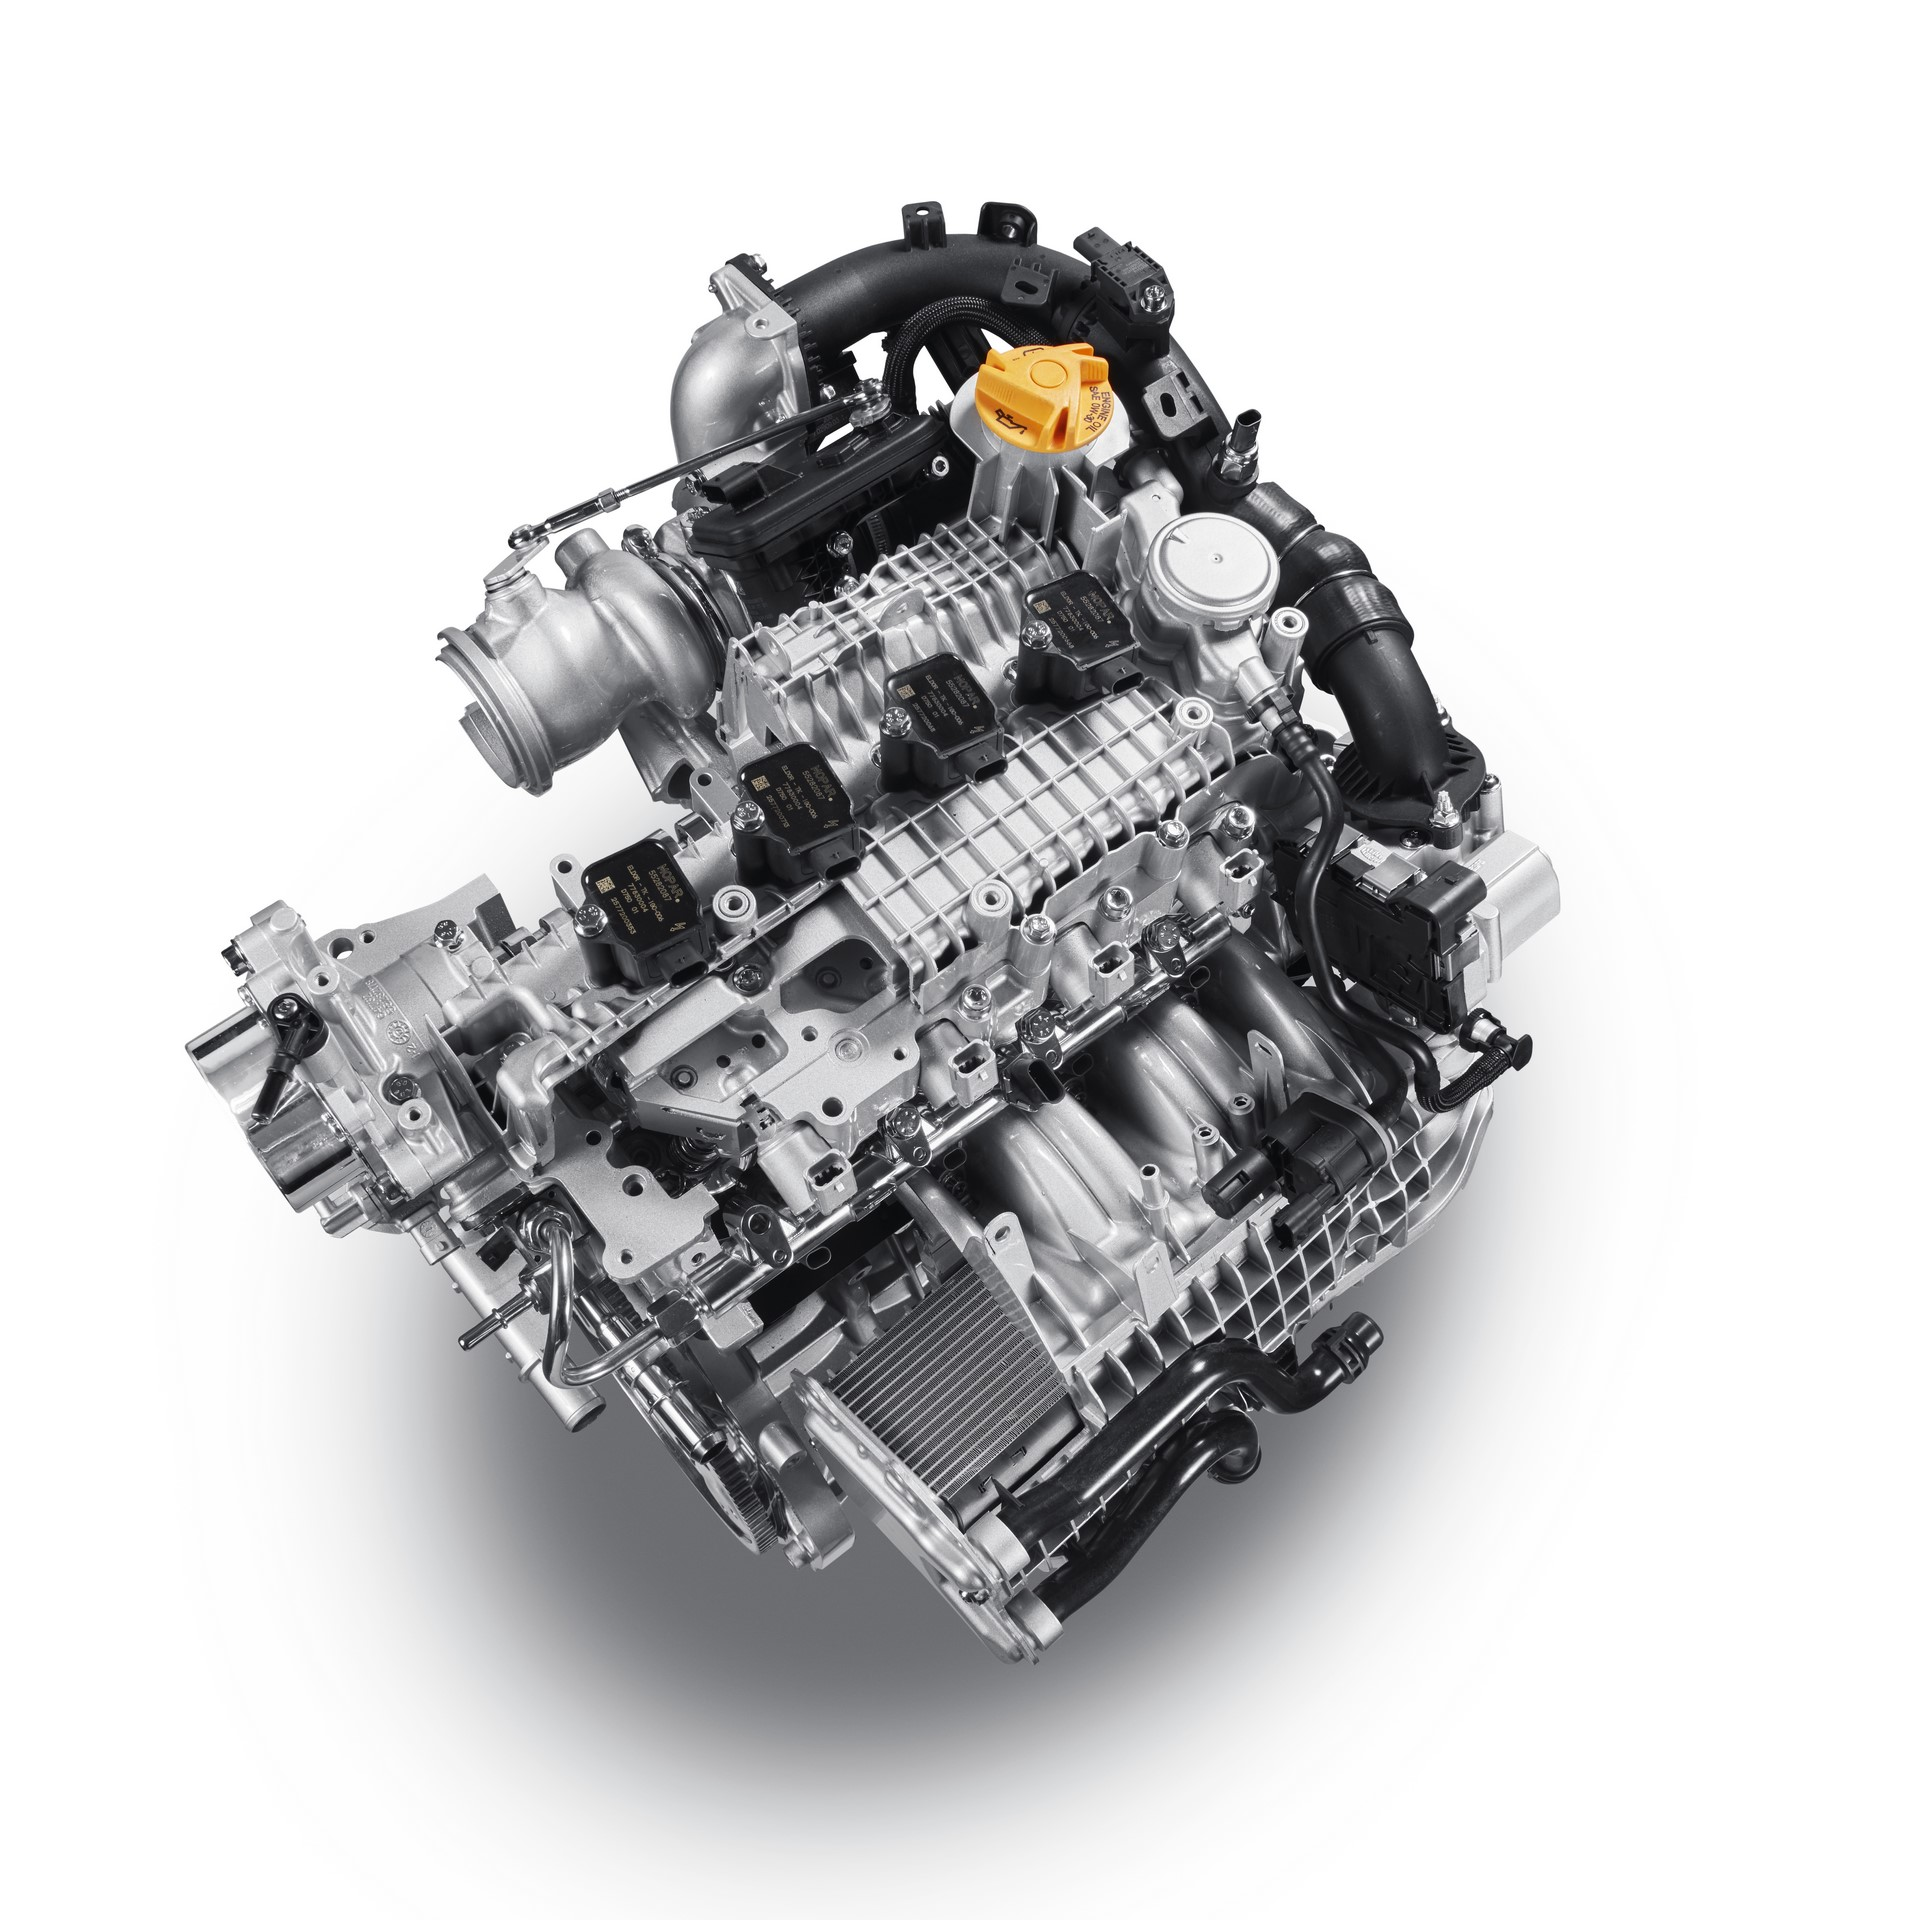 New-13L-Turbo-4-cylinder-150HP_19